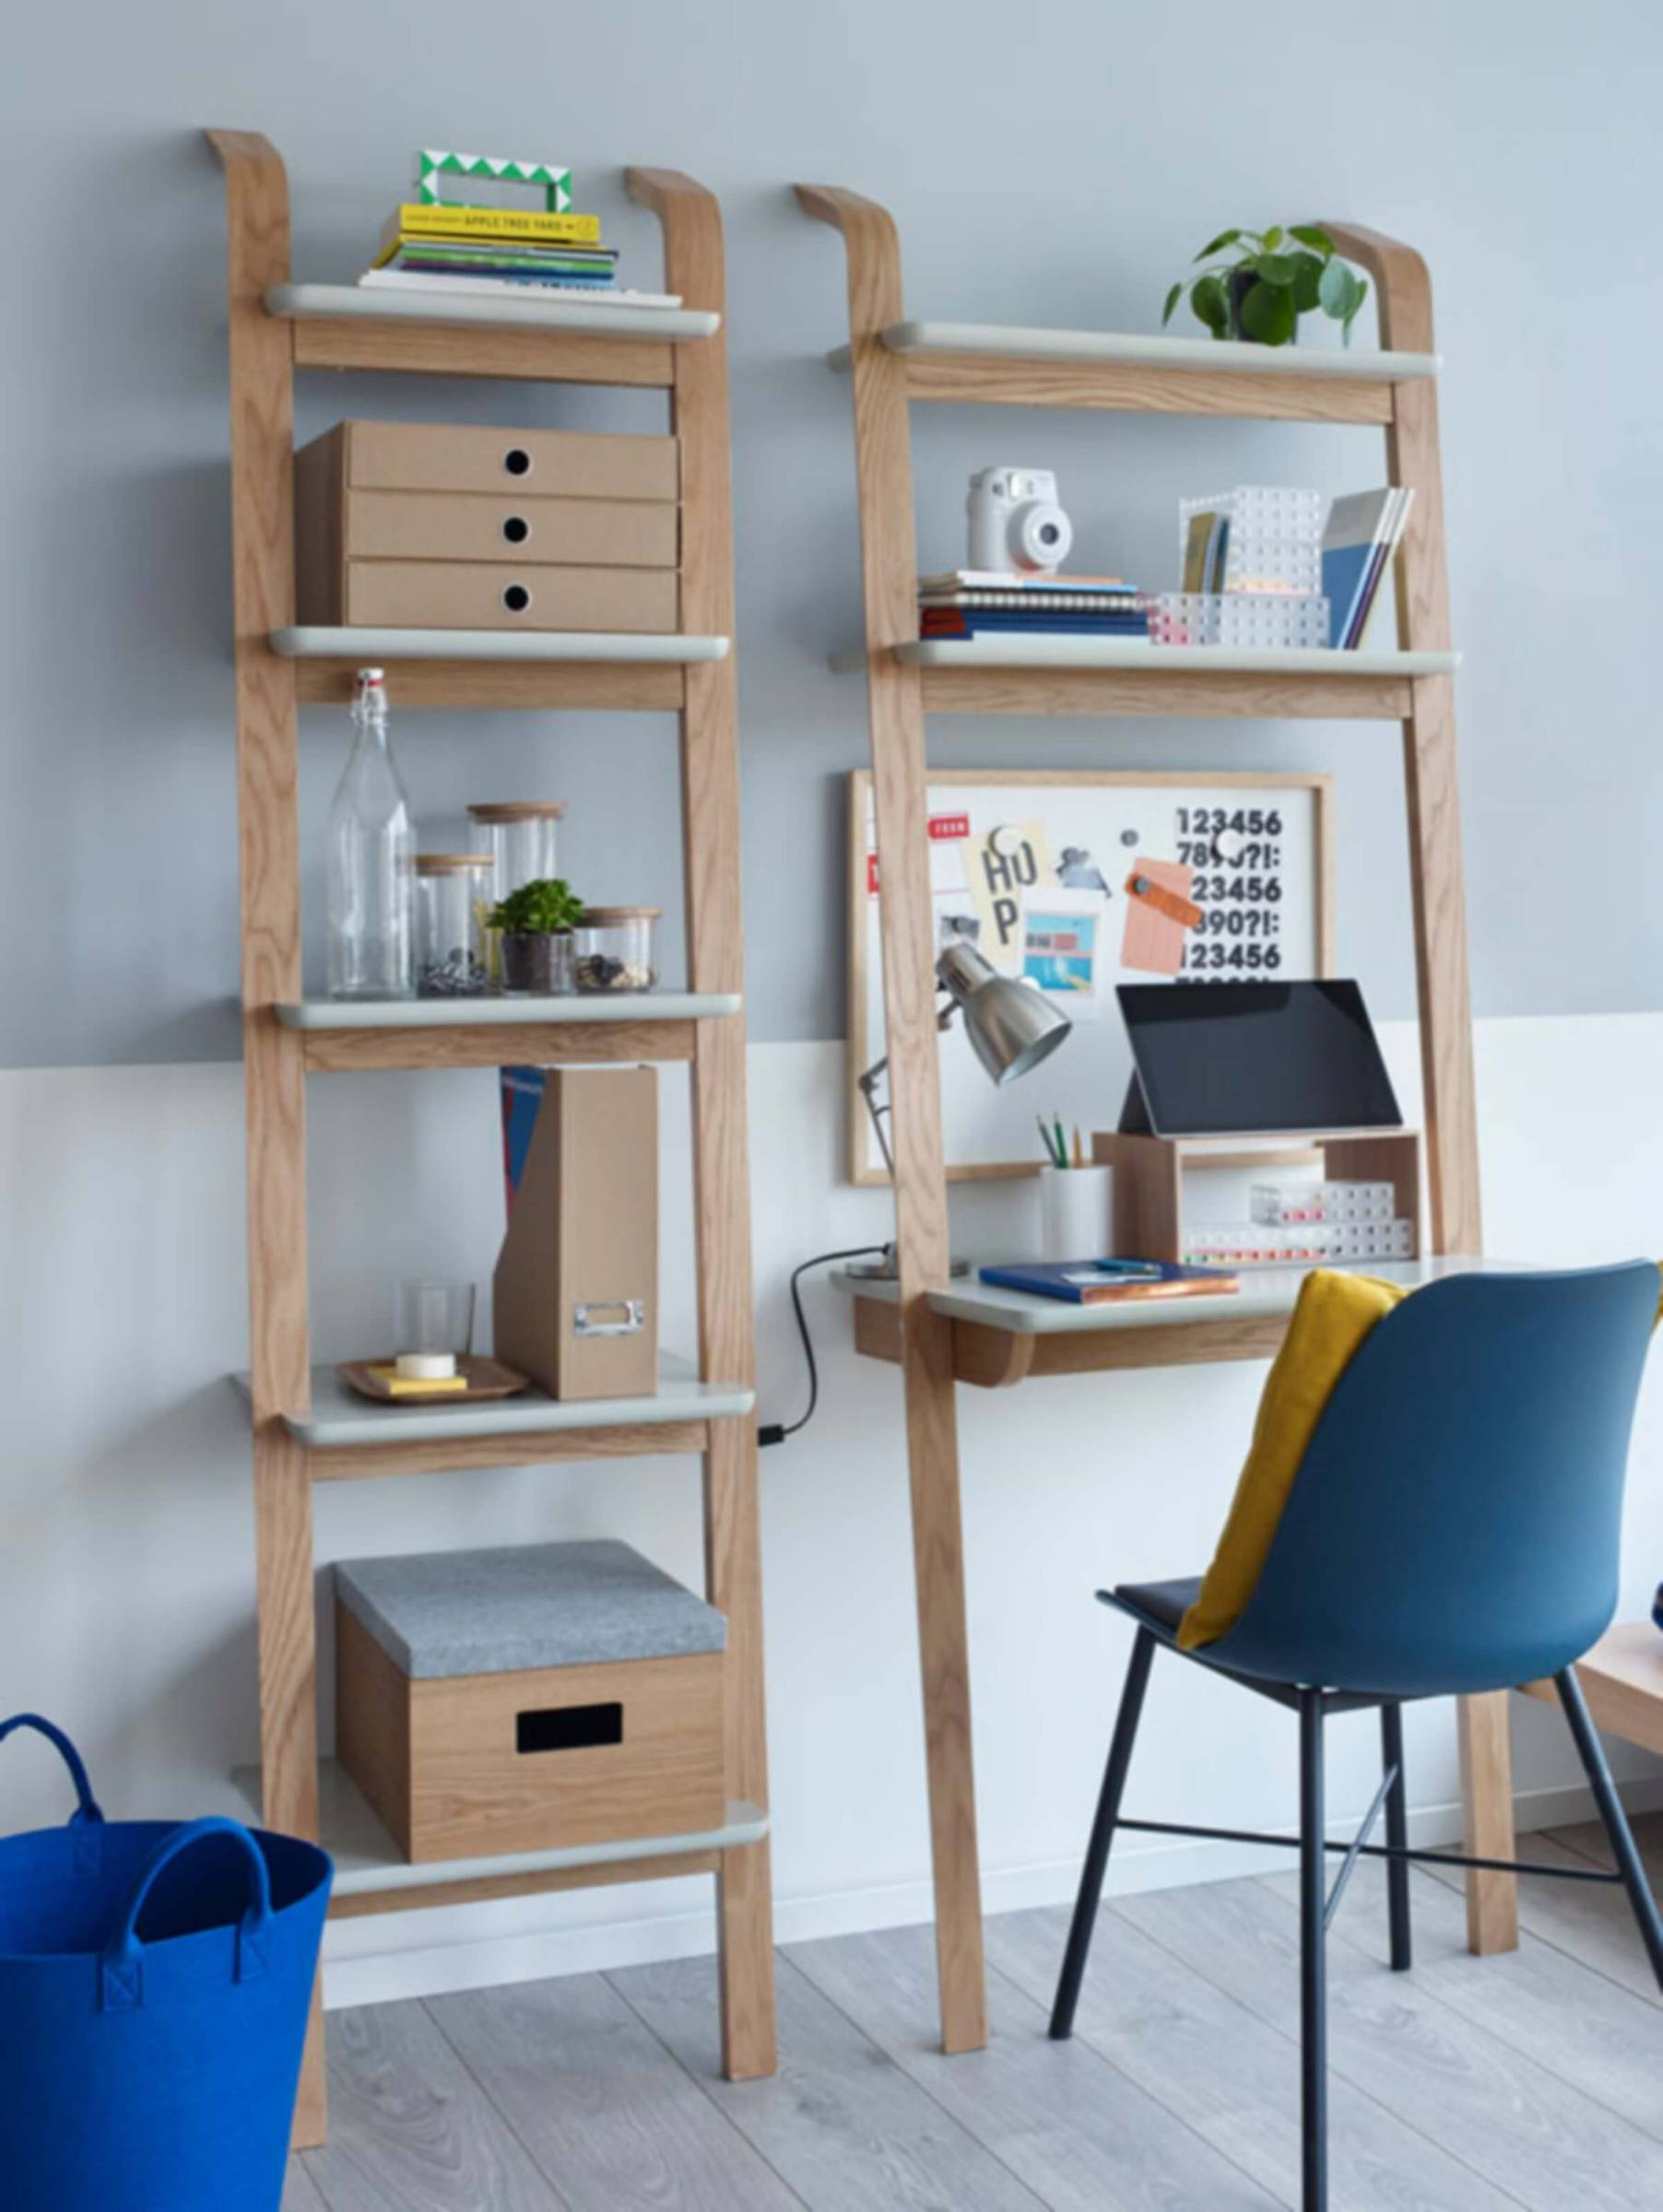 Bookcases, shelving units & shelves